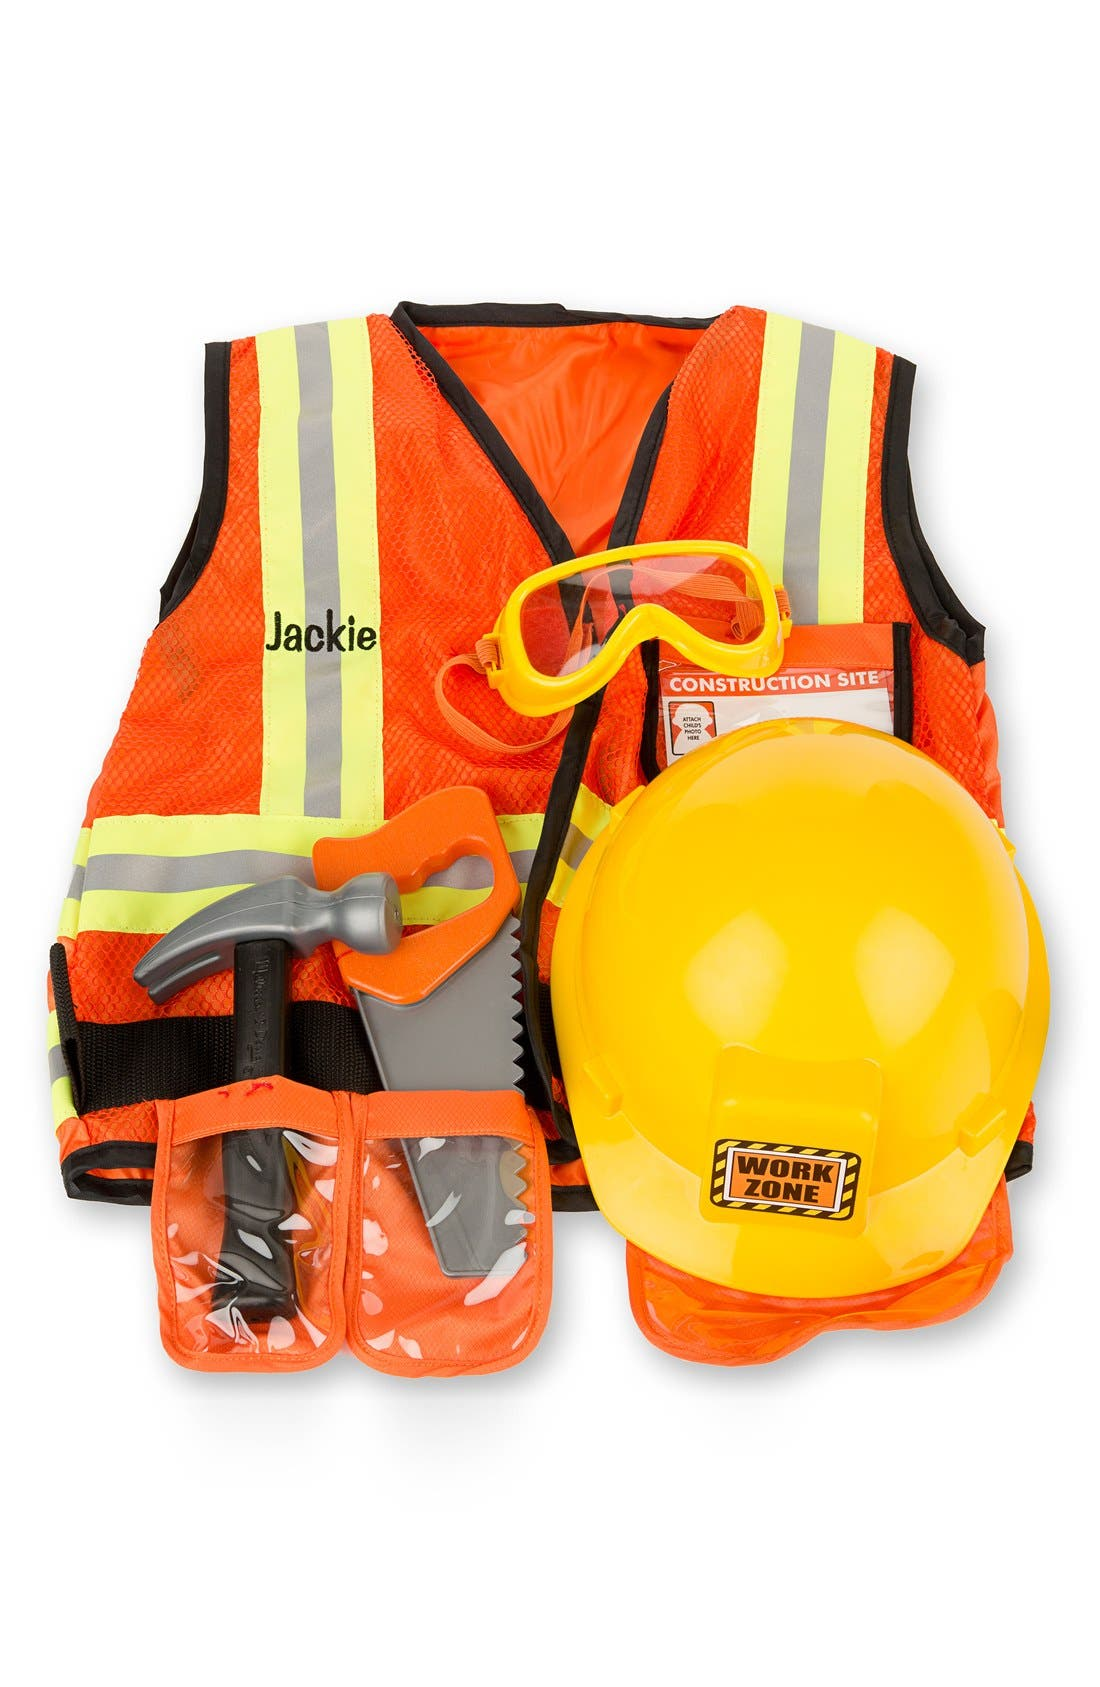 Melissa & Doug 'Construction Worker' Personalized Costume Set (Little Kid)